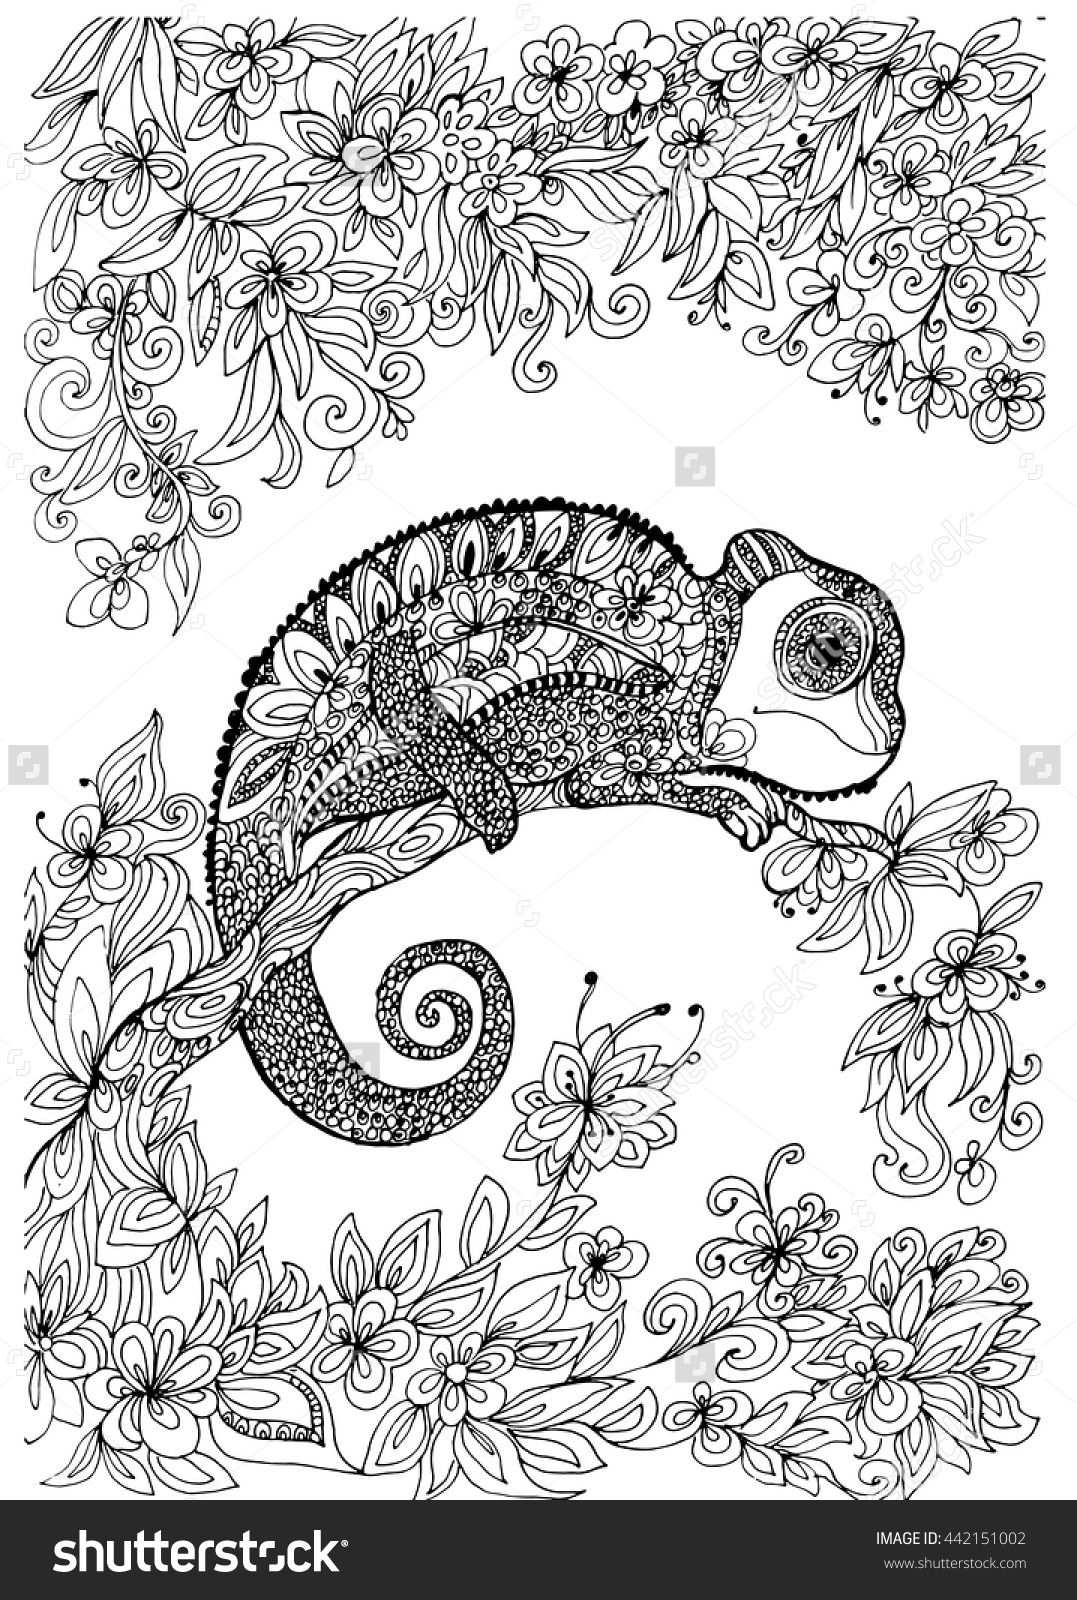 chameleon on the tree coloring page shutterstock